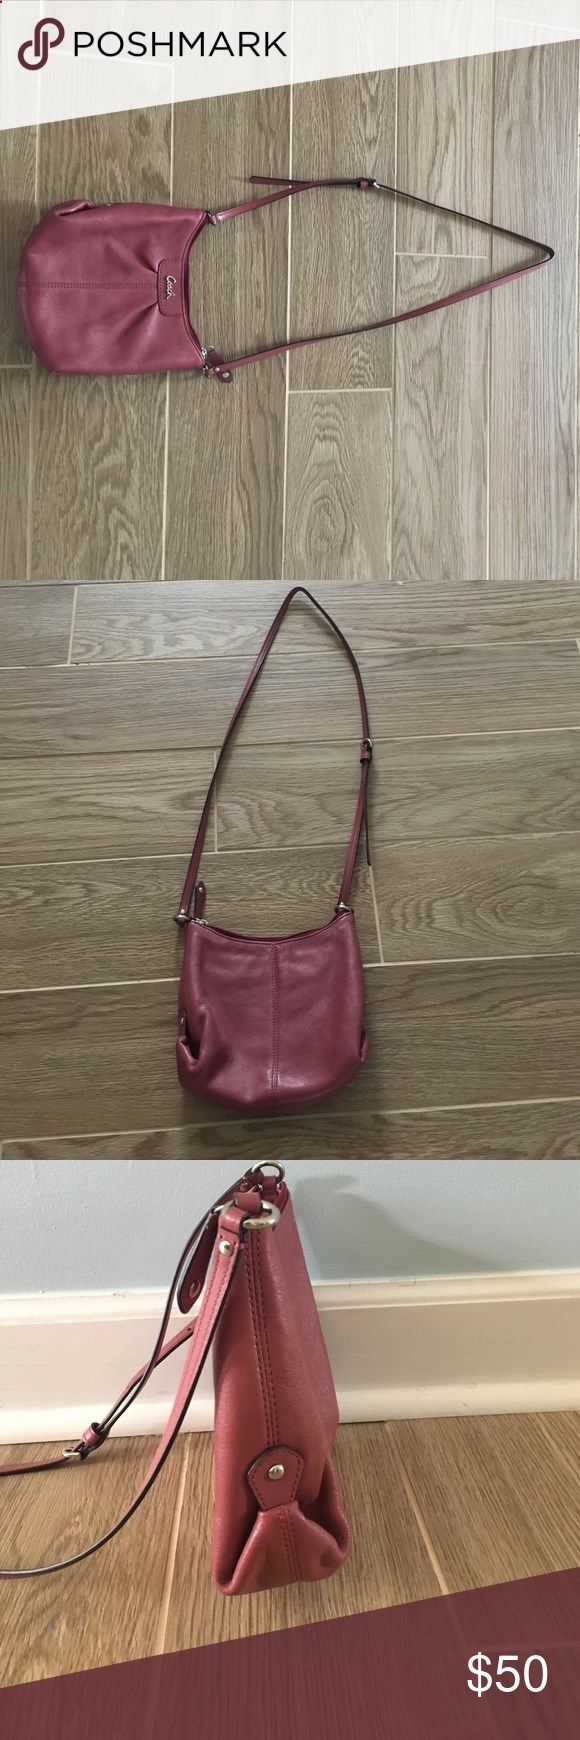 Coach Purse Small, pink, over the shoulder bag with light pink lining on the inside. In great condition and two pockets on the inside. Coach Bags Shoulder Bags